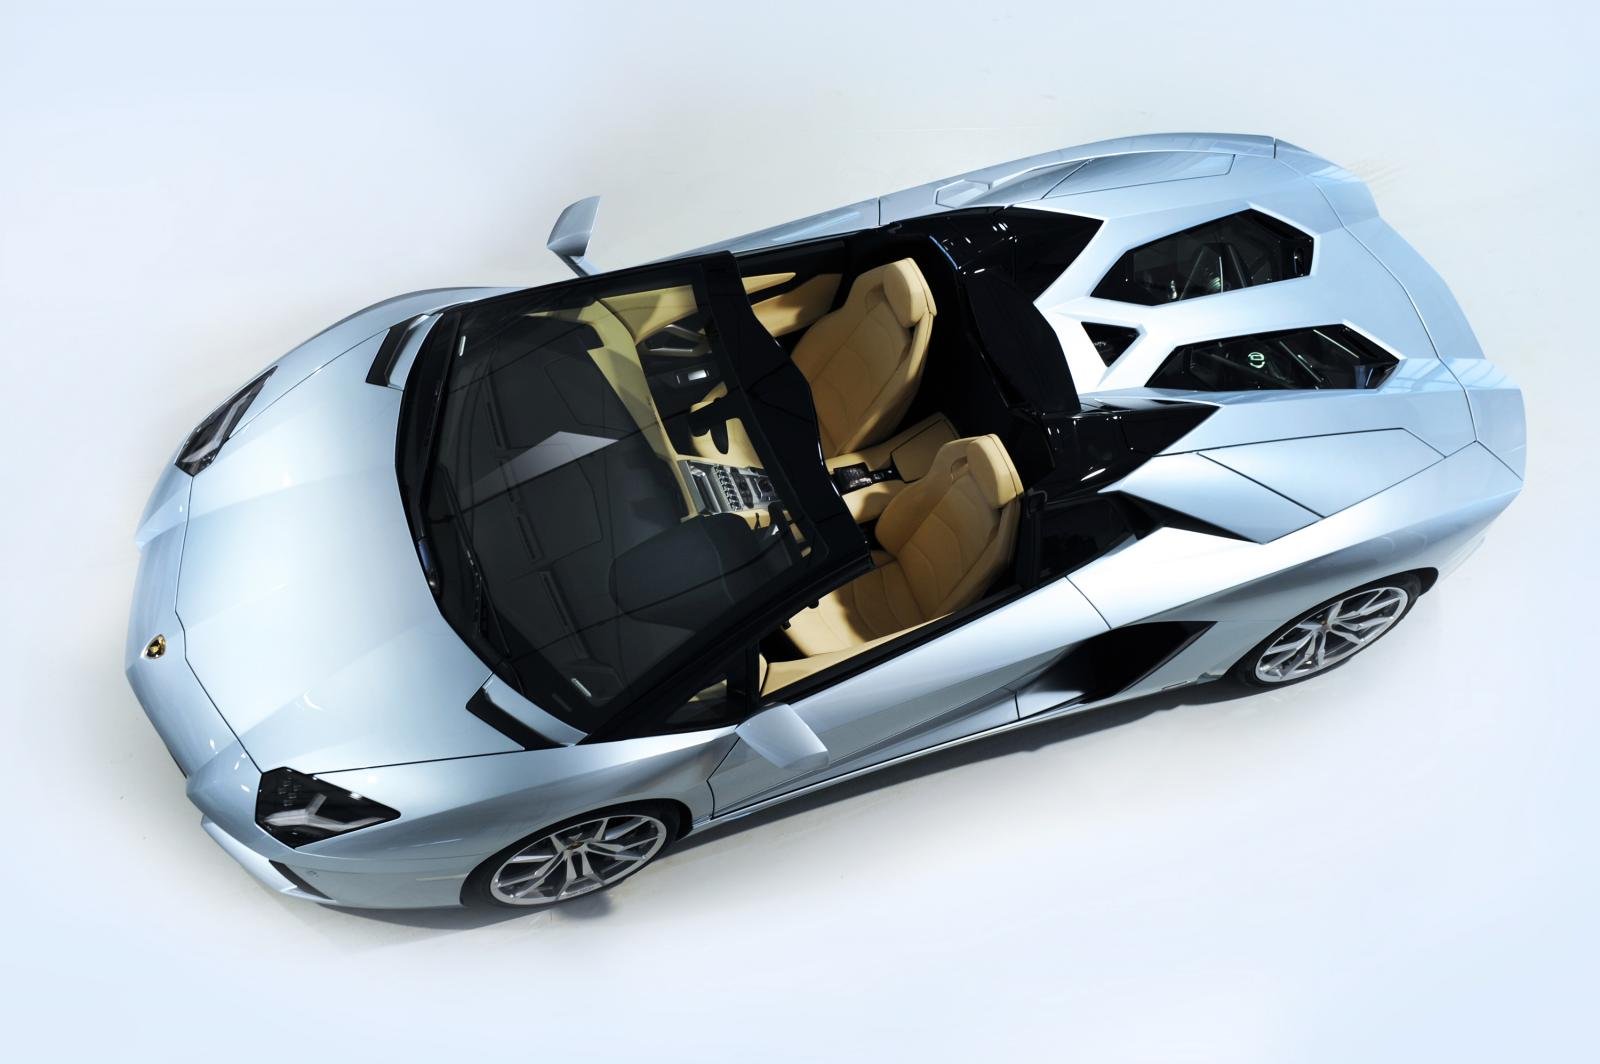 lamborghini lifts the lid on aventador roadster. Black Bedroom Furniture Sets. Home Design Ideas